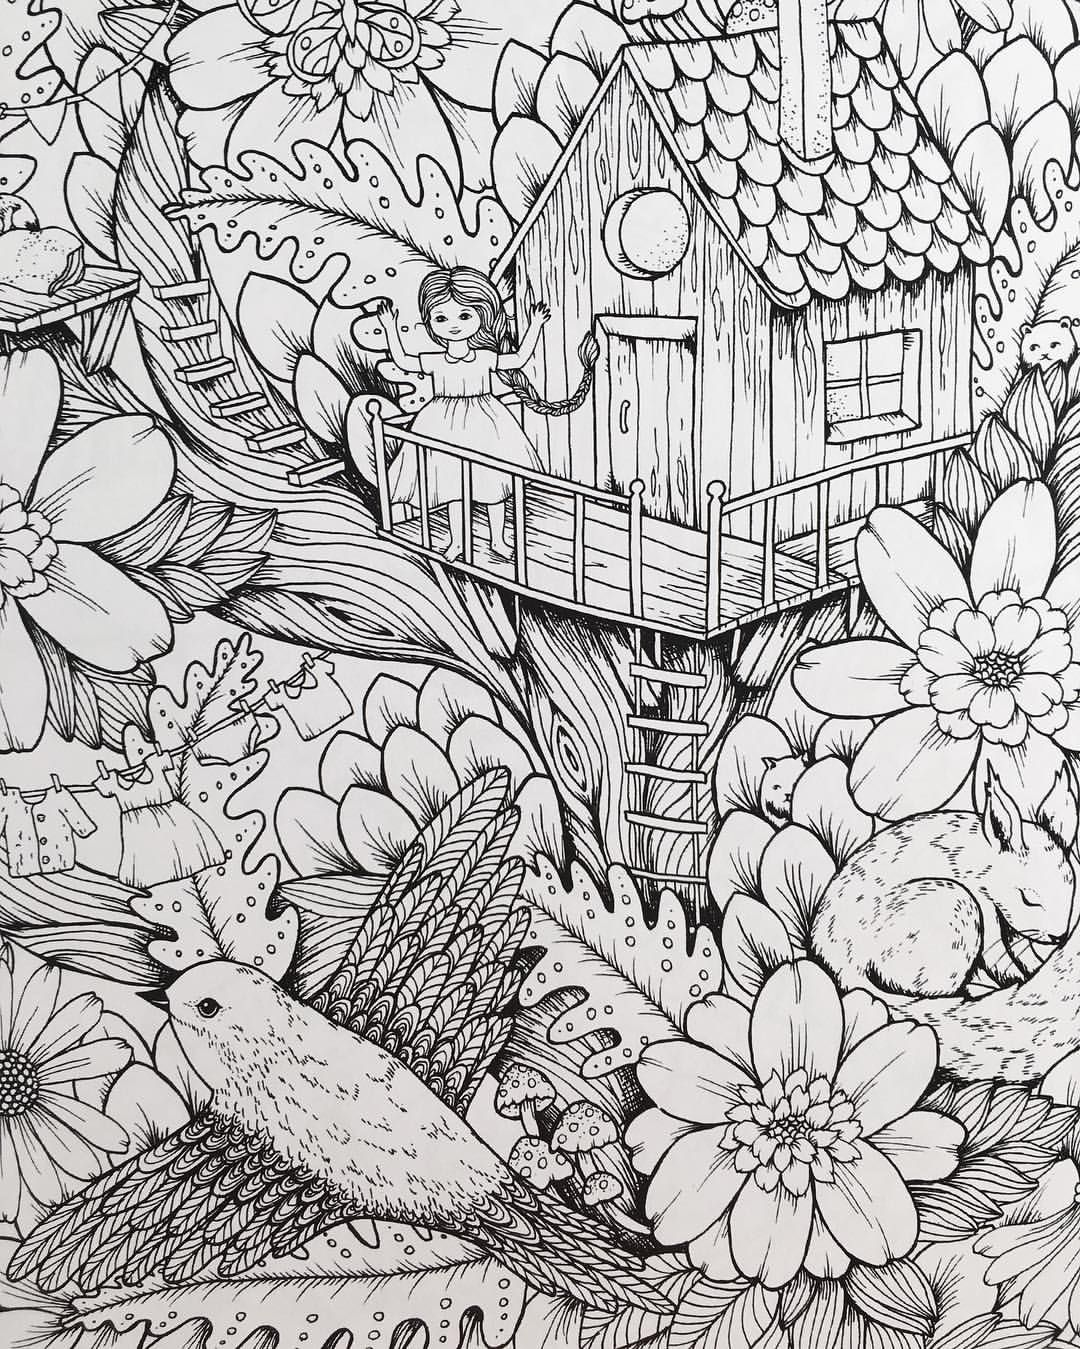 543 Likes 32 Comments Maria Trolle Maria Trolle On Instagram Picture From My Upcoming Coloringbook Vi Christian Coloring Coloring Books Coloring Pages